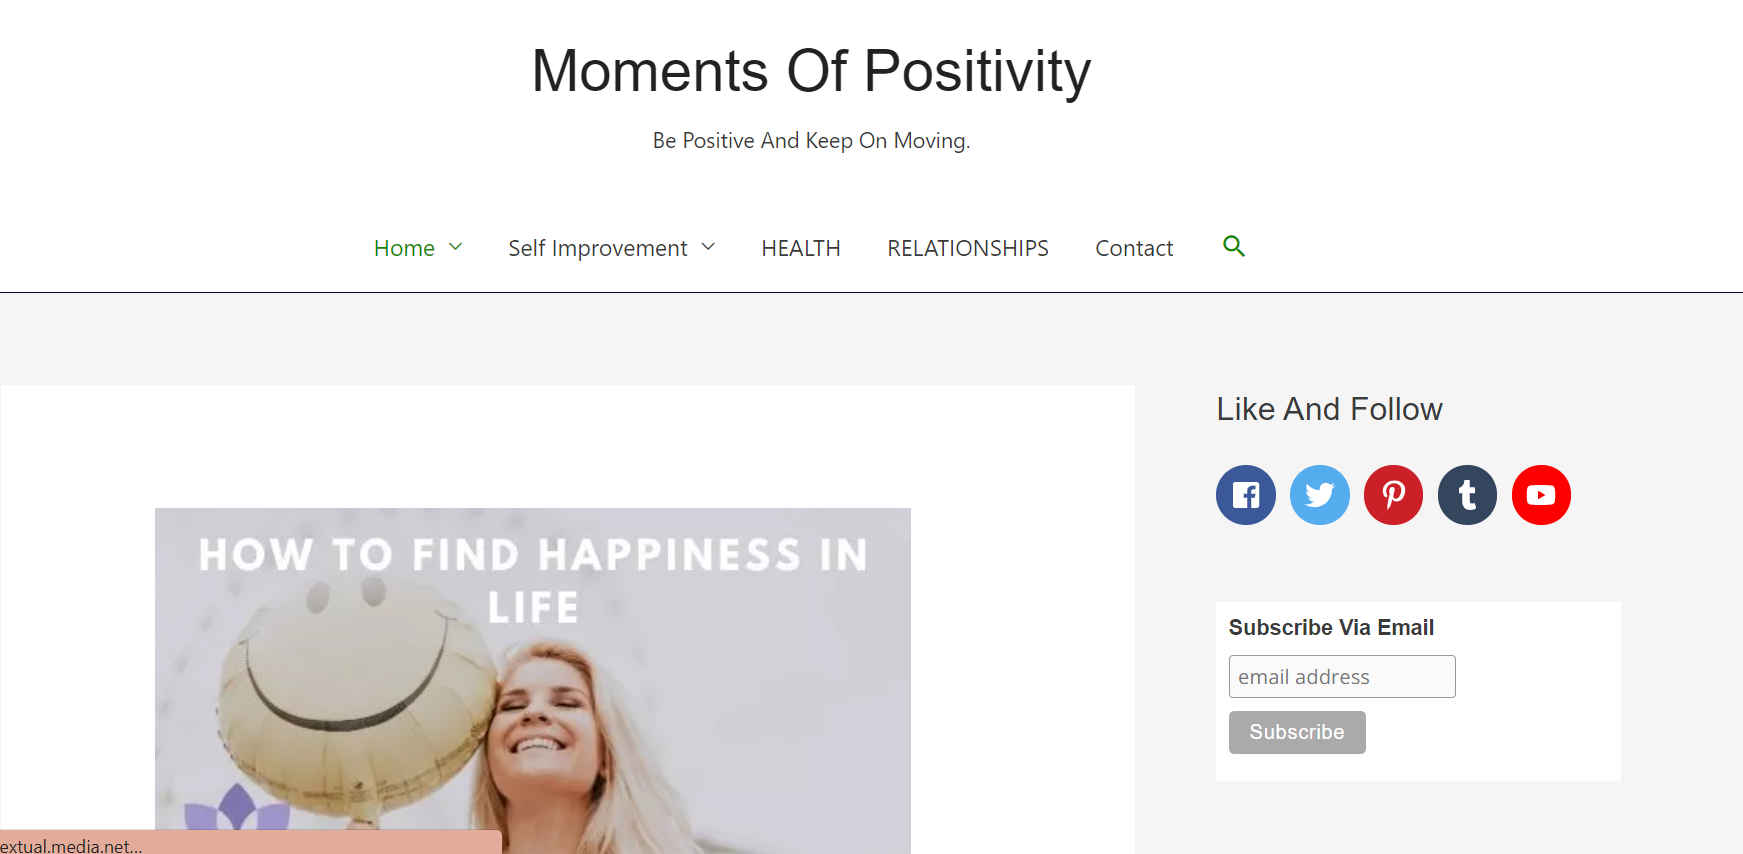 Moments Of Positivity